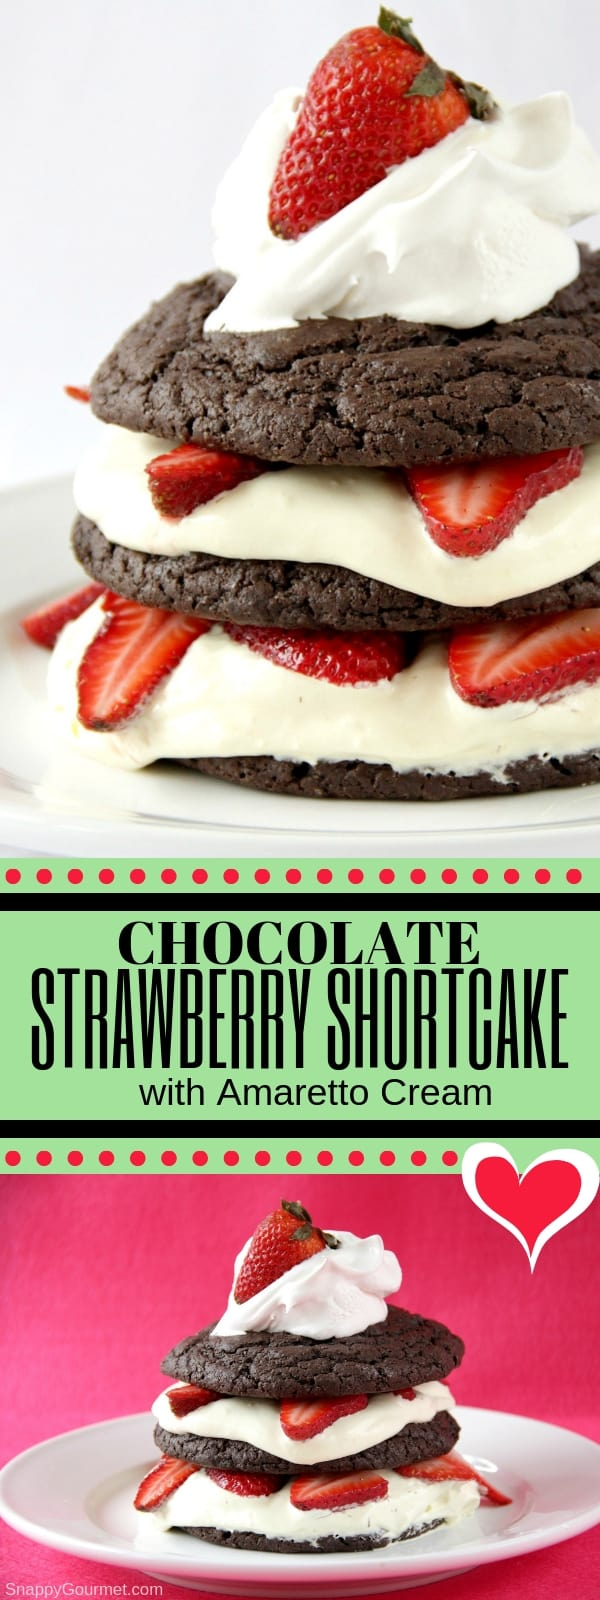 Chocolate Strawberry Shortcake with Amaretto Cream photo collage pin